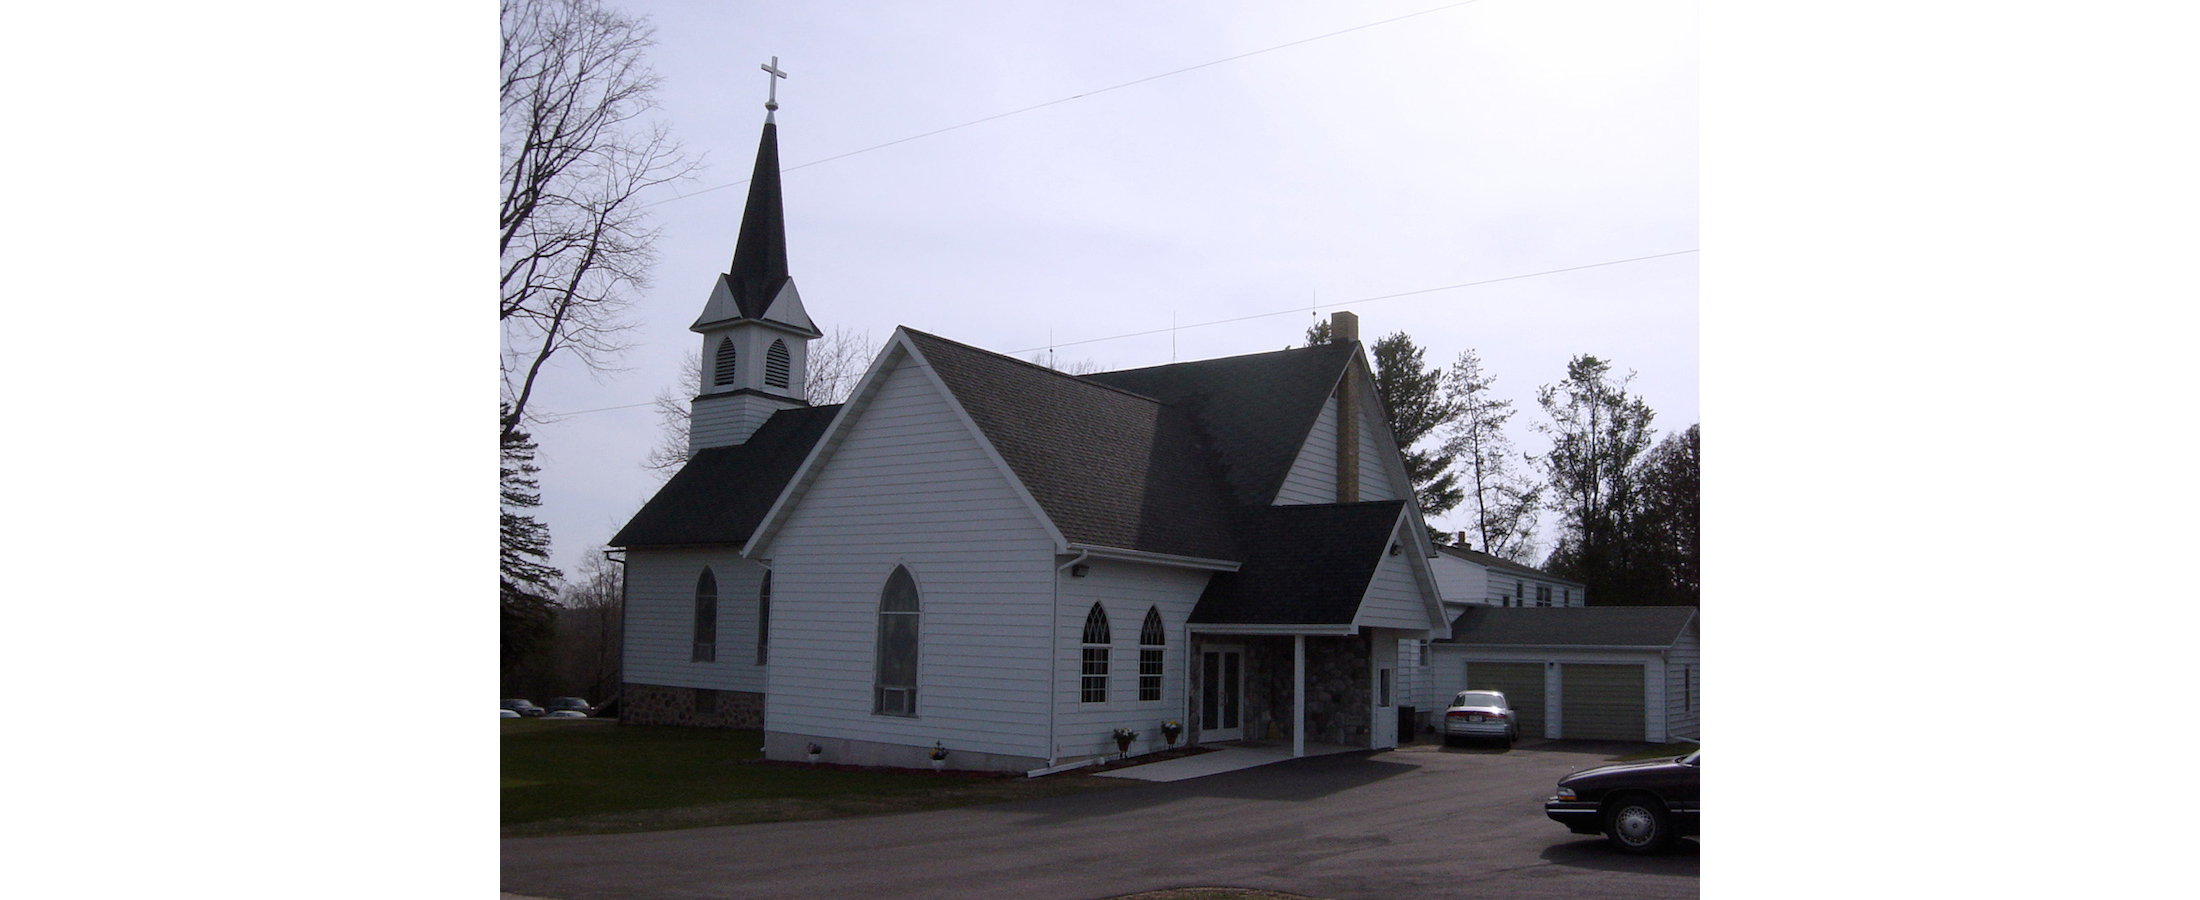 saint mary catholic singles Cathedral & mile hi catholic singles club reunion  location: st mary catholic church, aspen, co cost: $150 per person contact judy dunn (248) 767-4743.